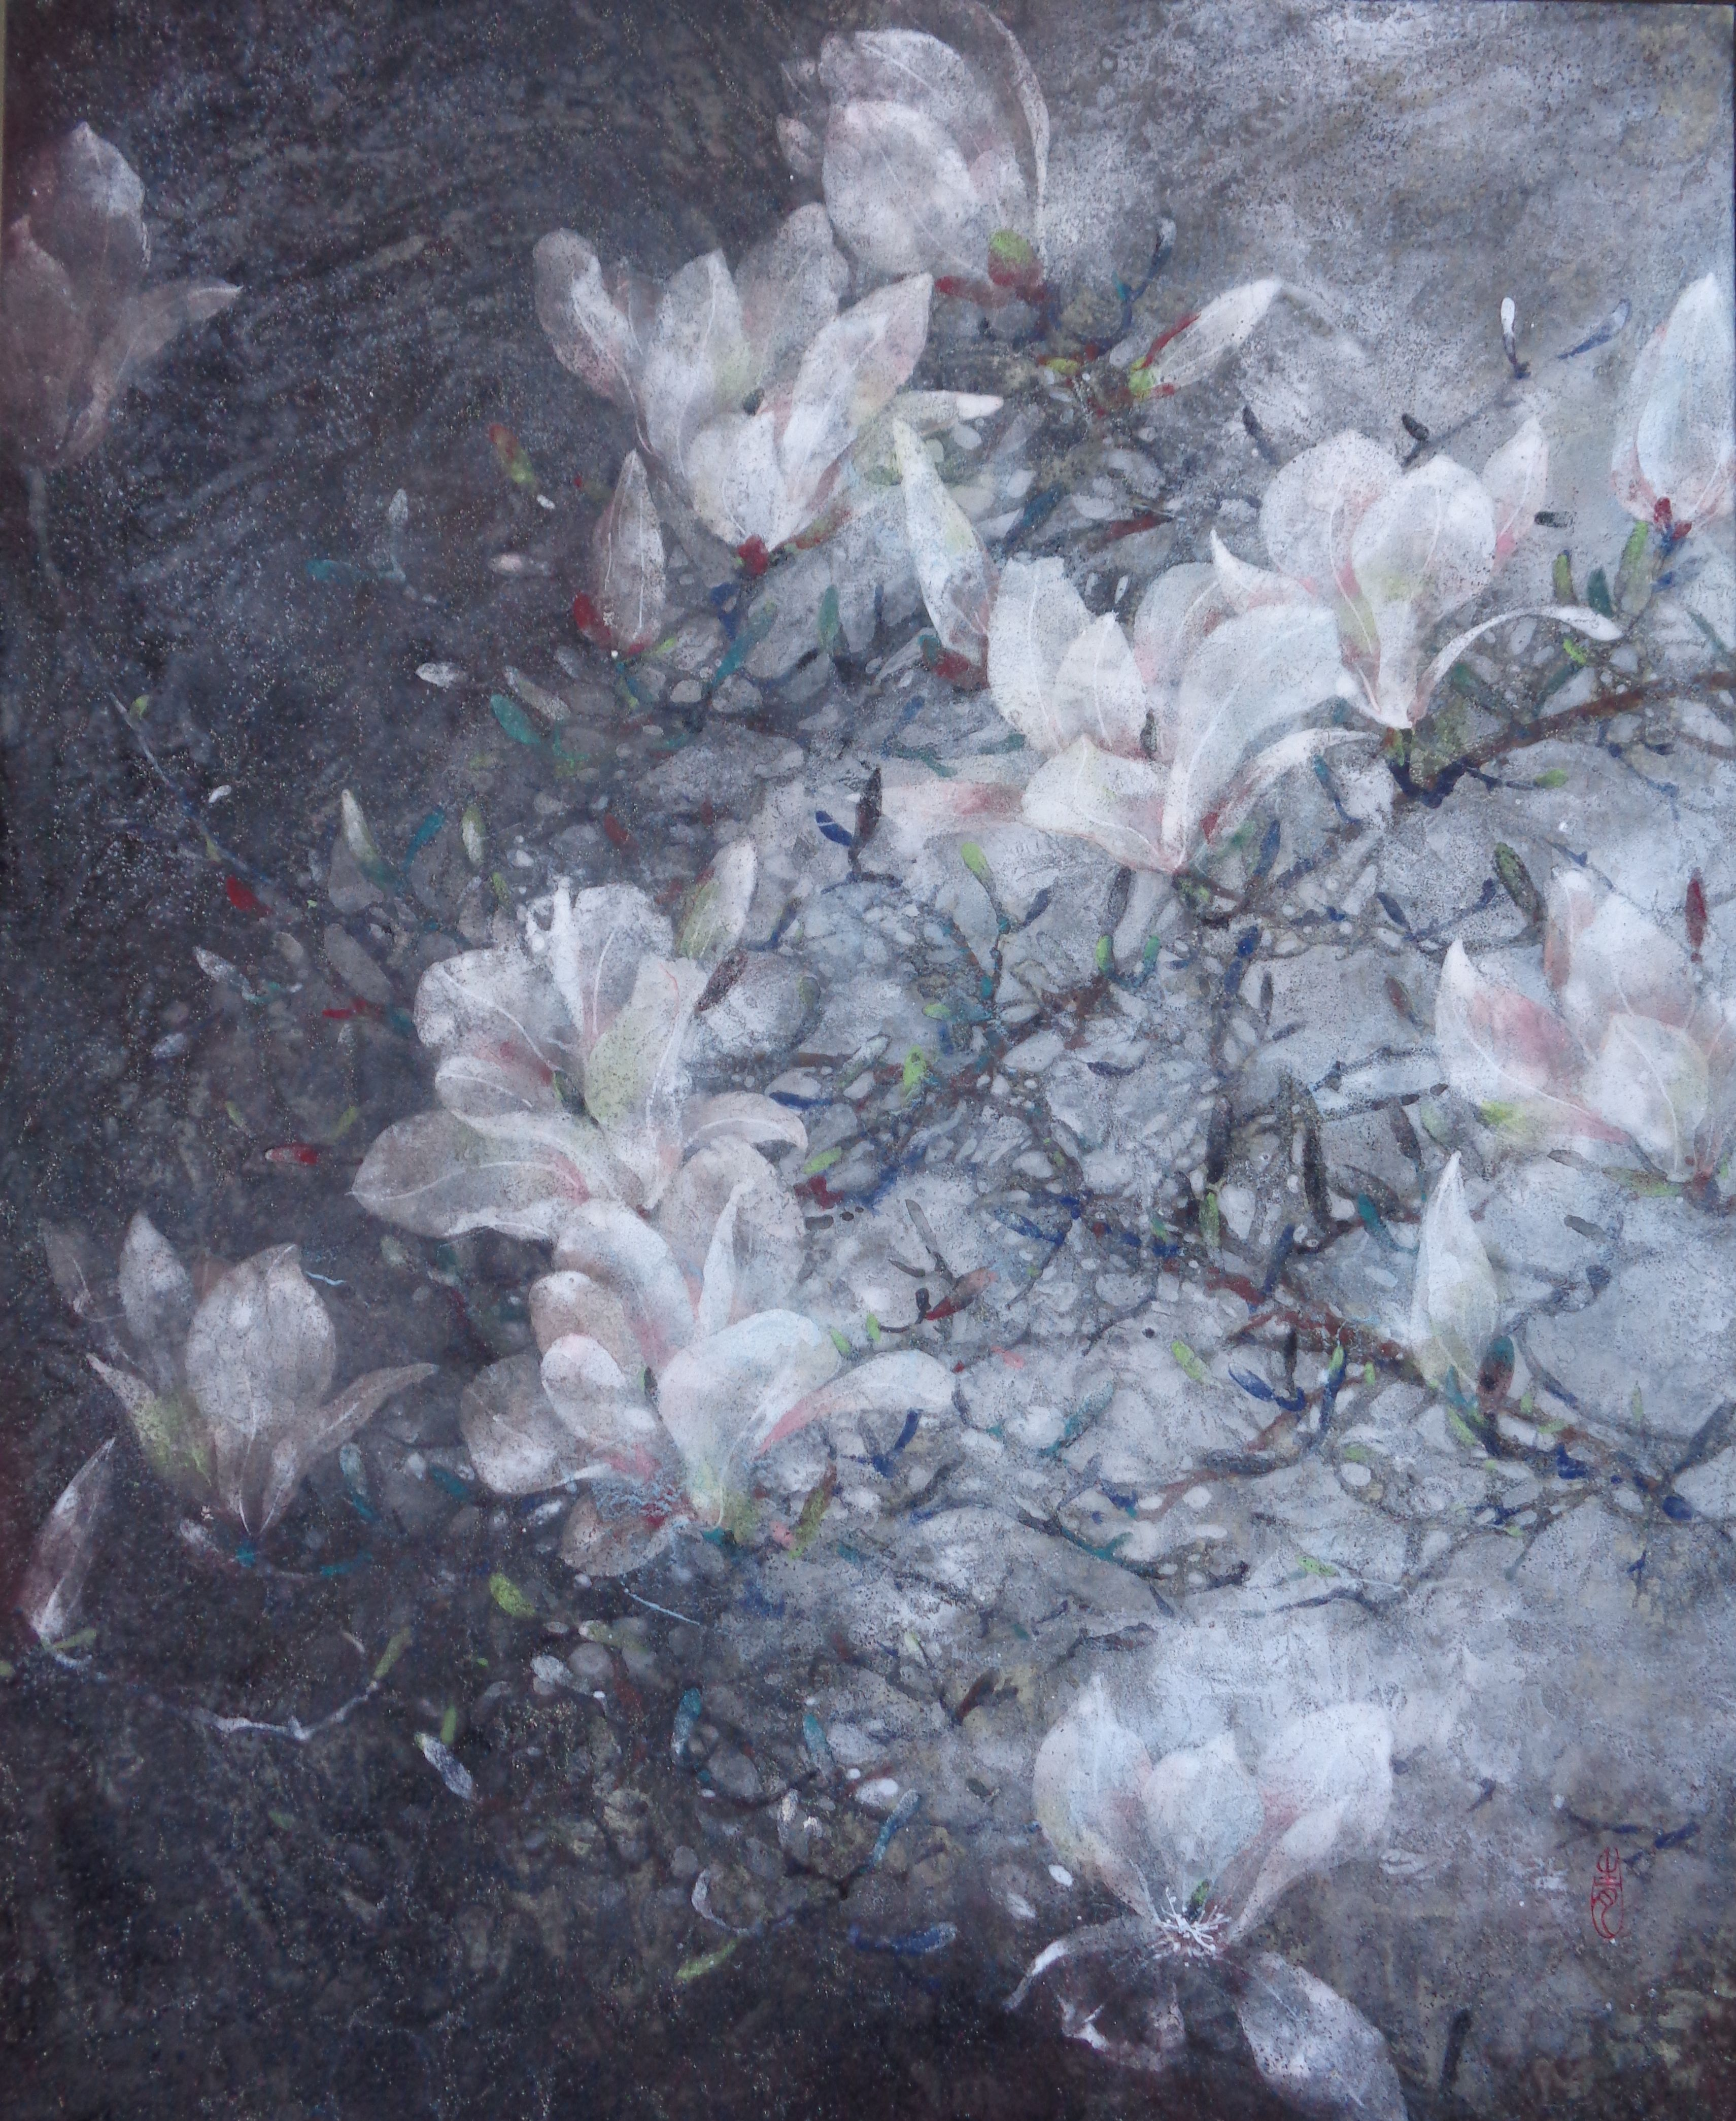 Magnolia,Chen Yiching,Contemporary painting